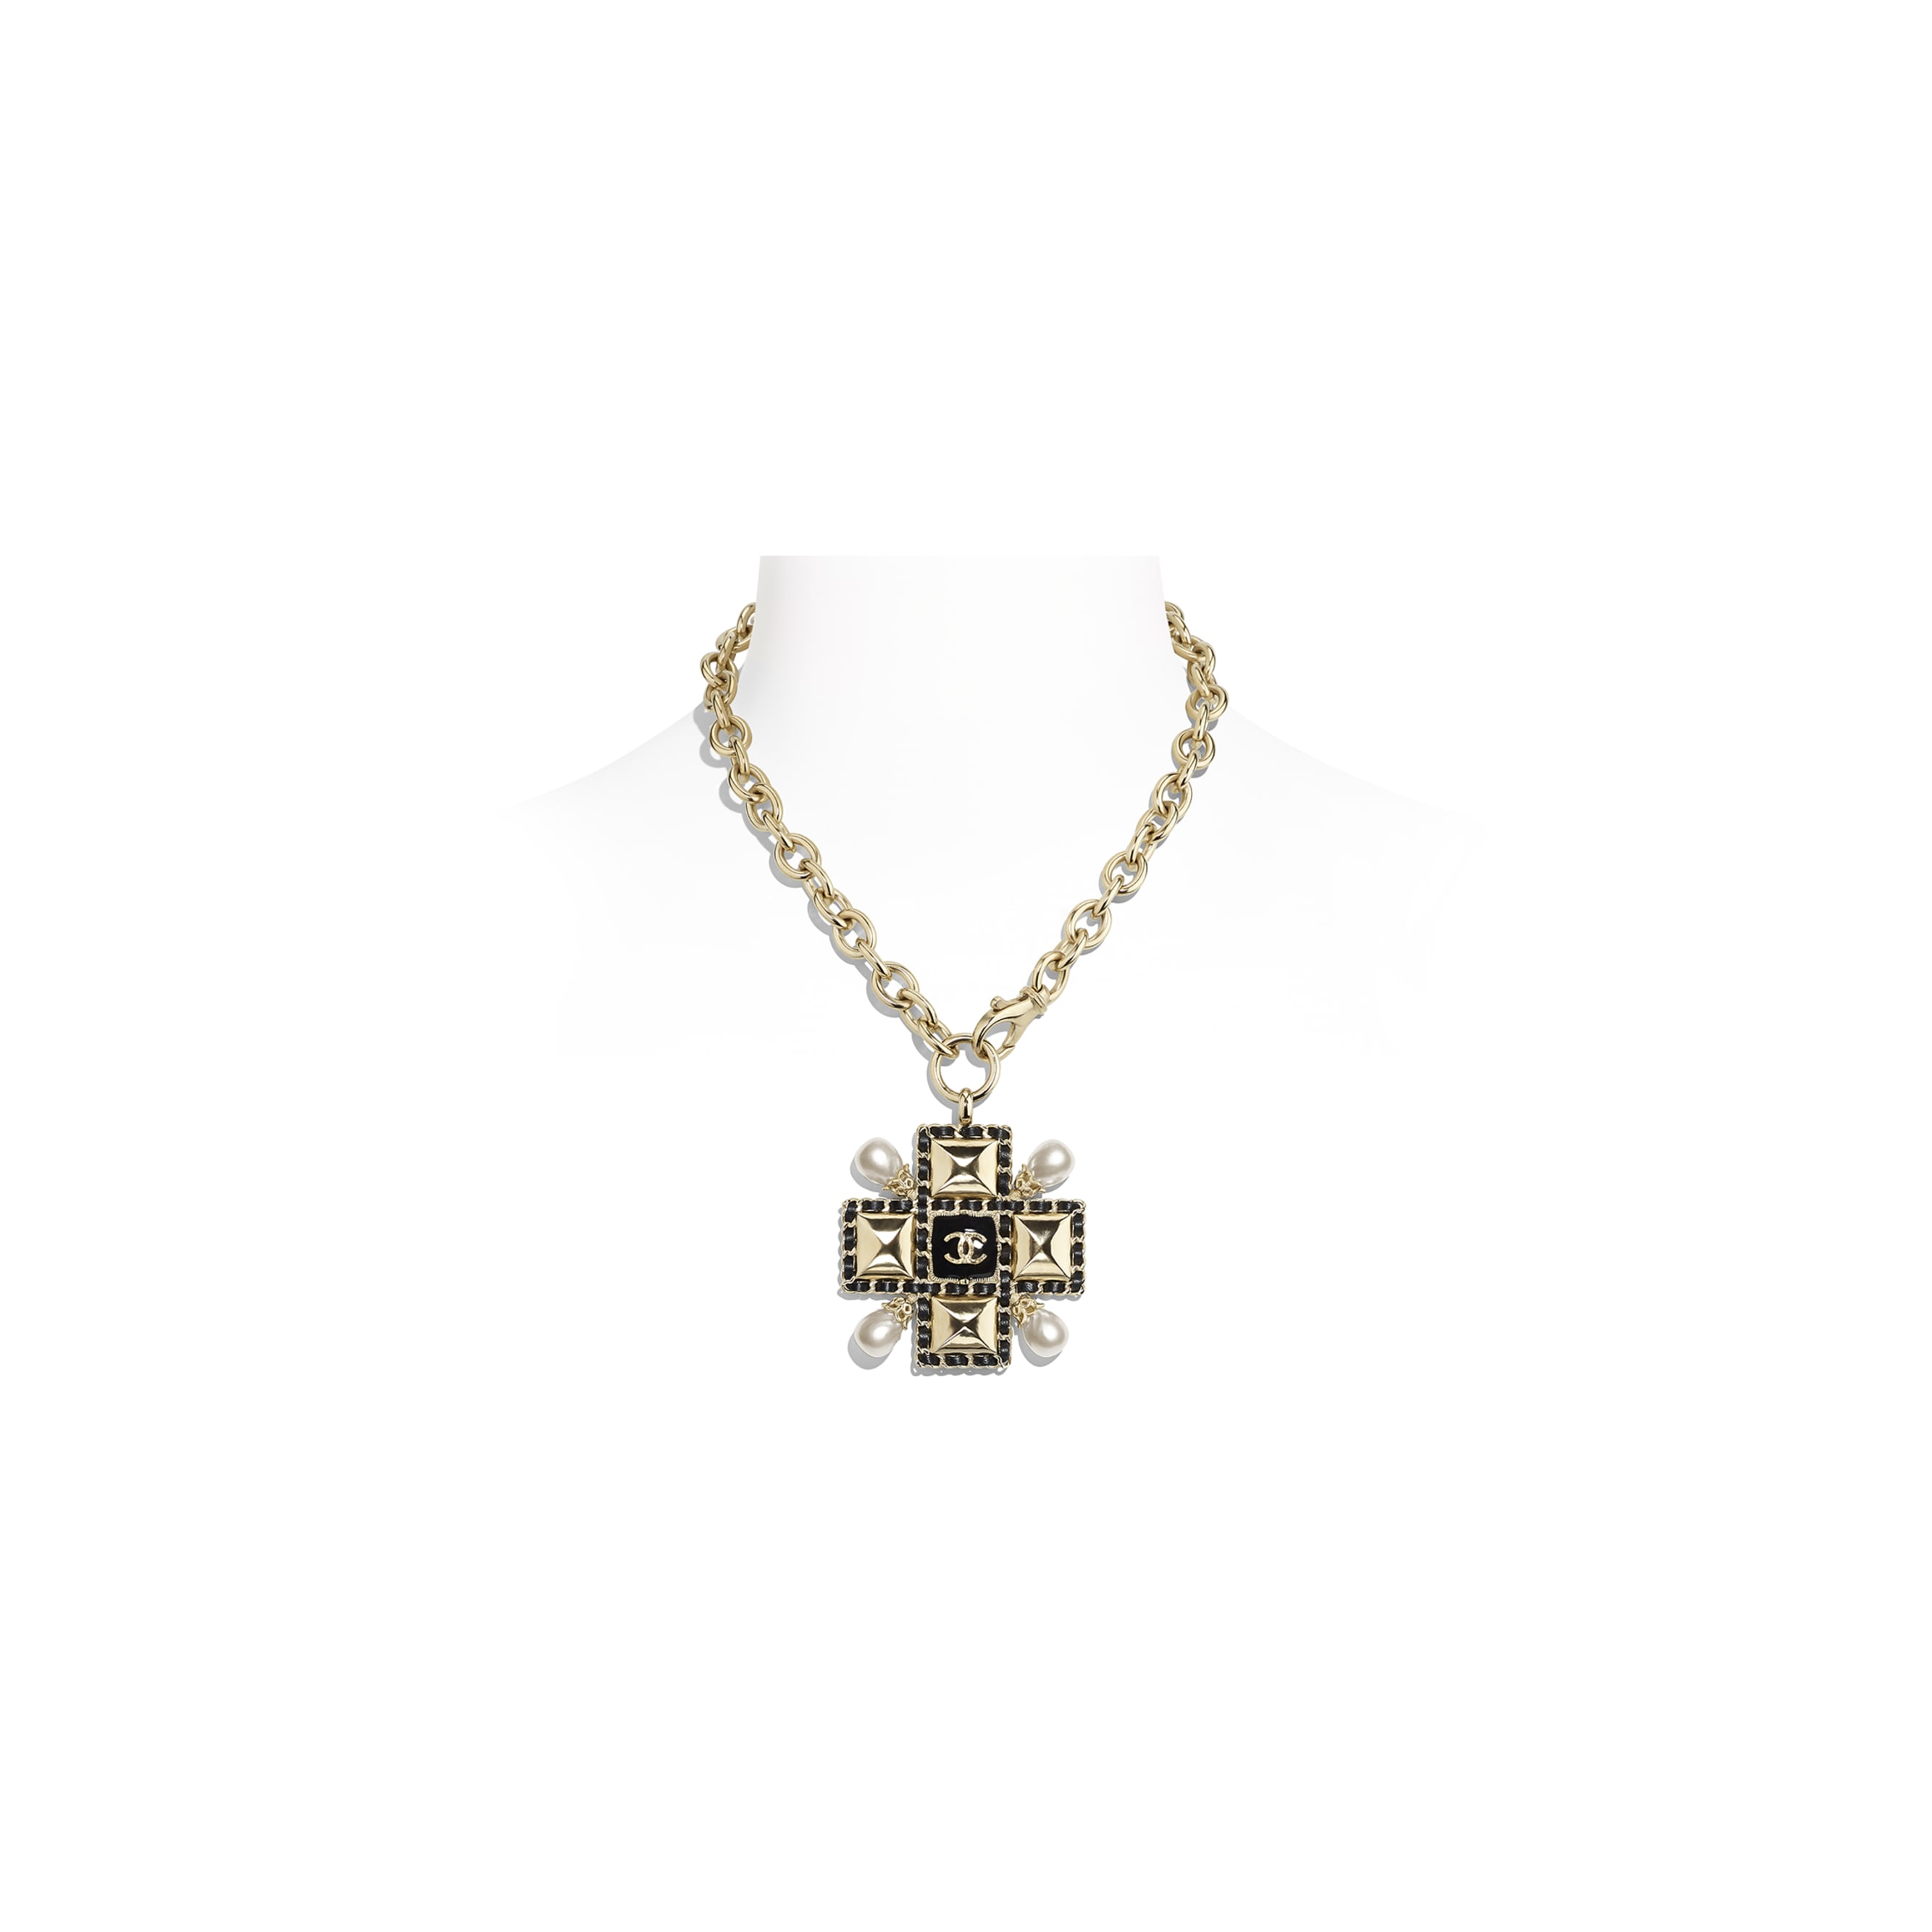 Necklace - Gold, Pearly White & Black - Metal, Imitation Pearls, Lambskin & Resin - CHANEL - Default view - see standard sized version